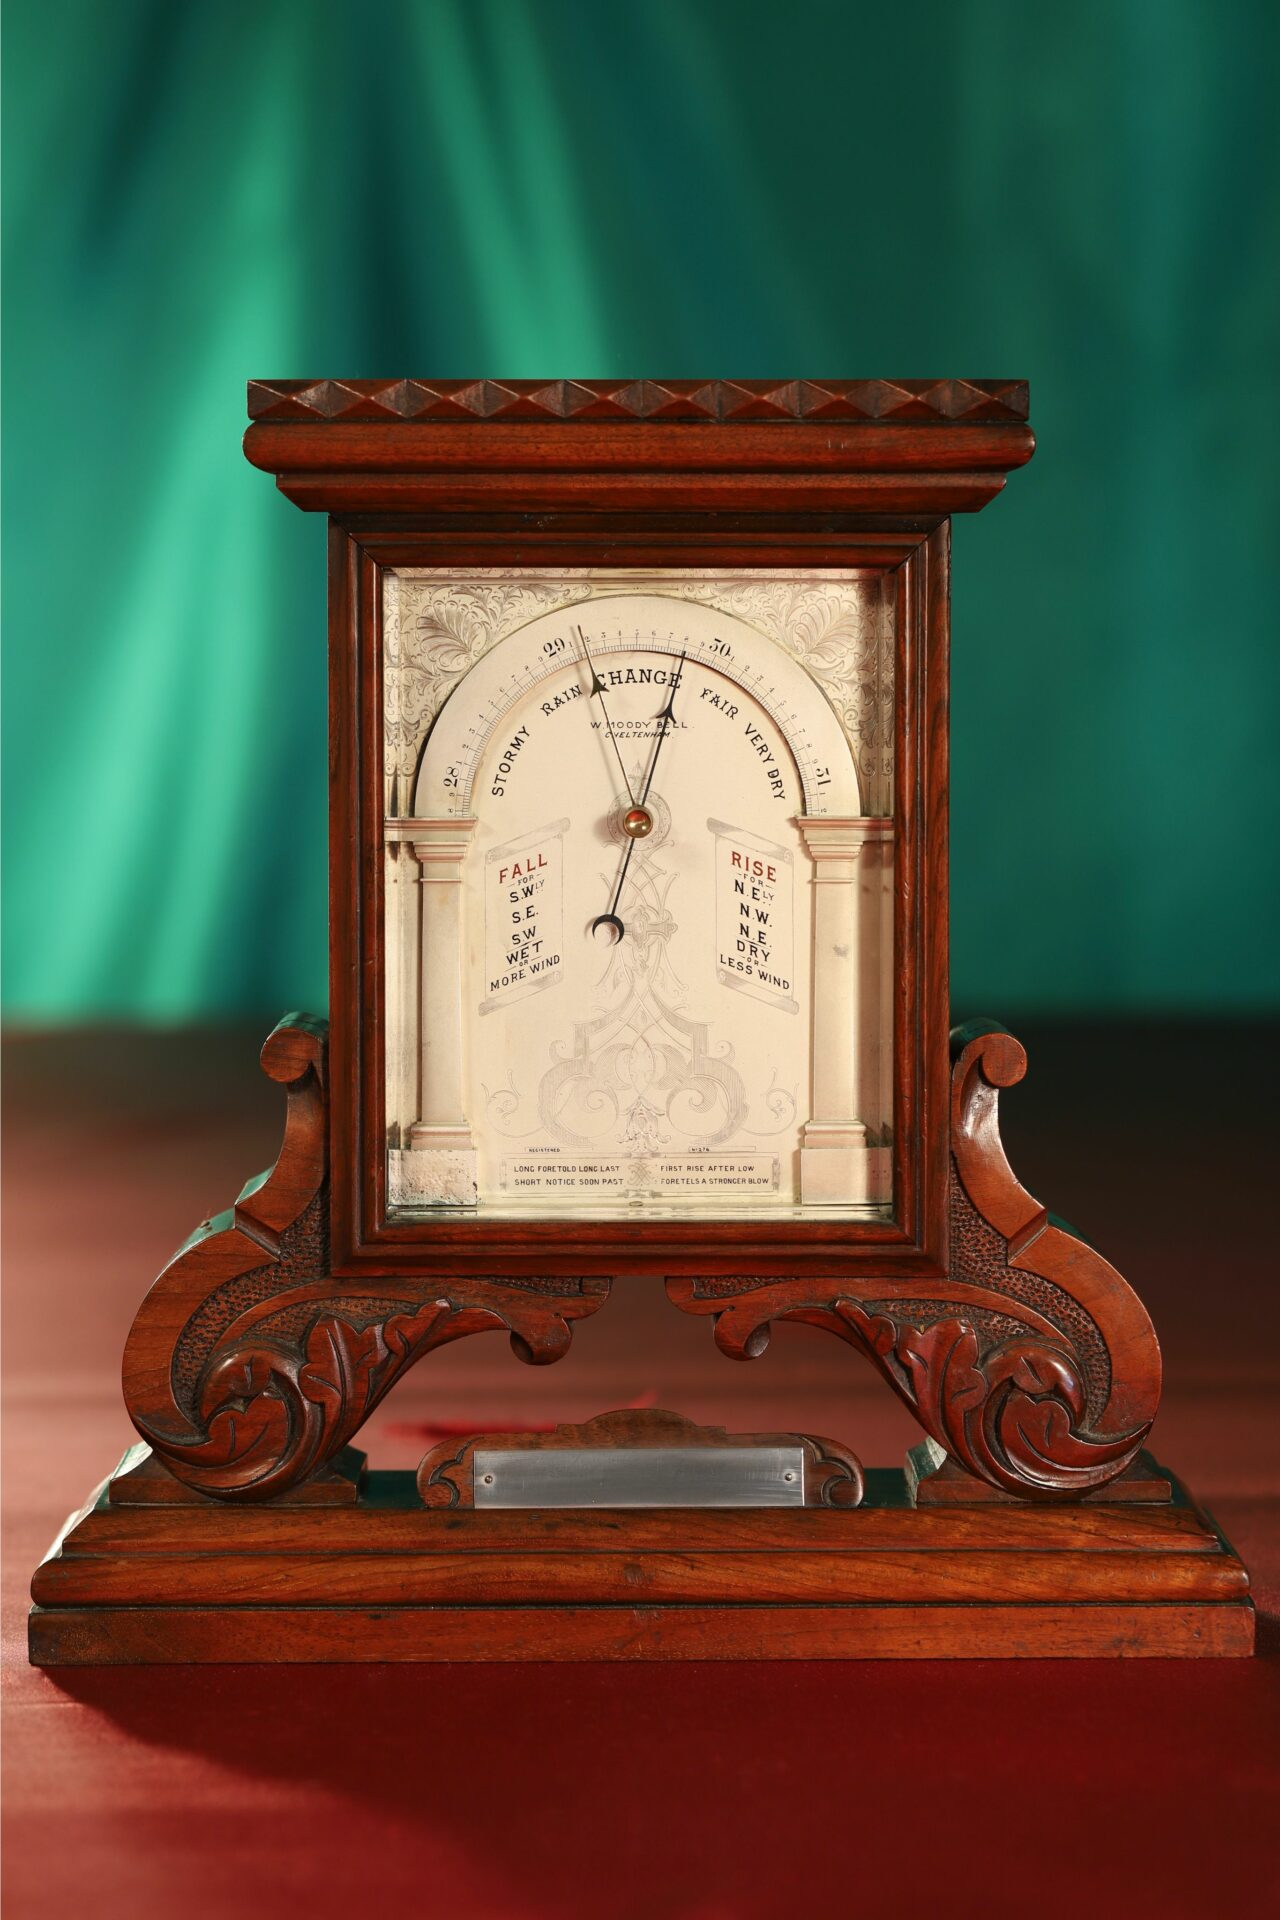 Image of Moody Bell Table Barometer c1880 taken from front